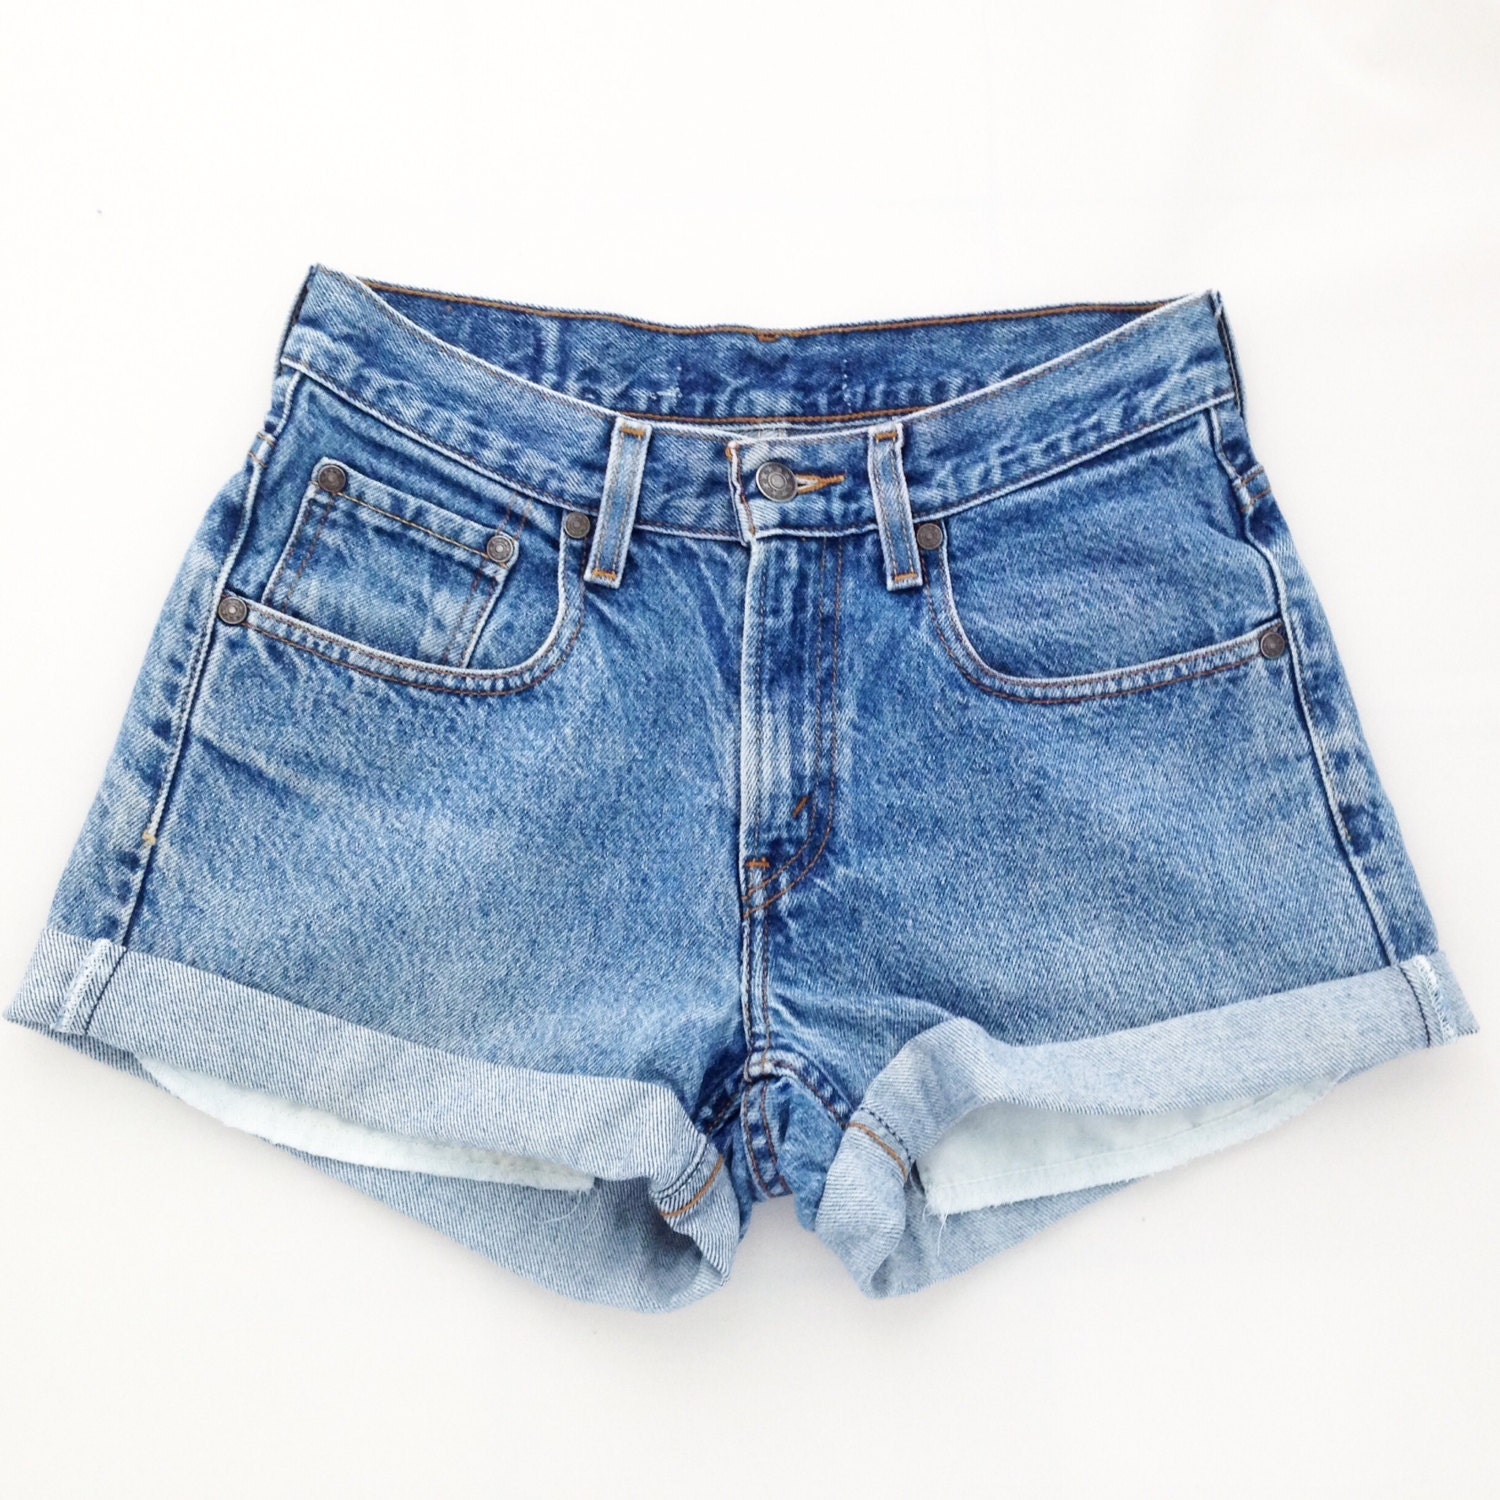 ORIGINAL BLUES High Waisted Shorts levis wrangler gap guess